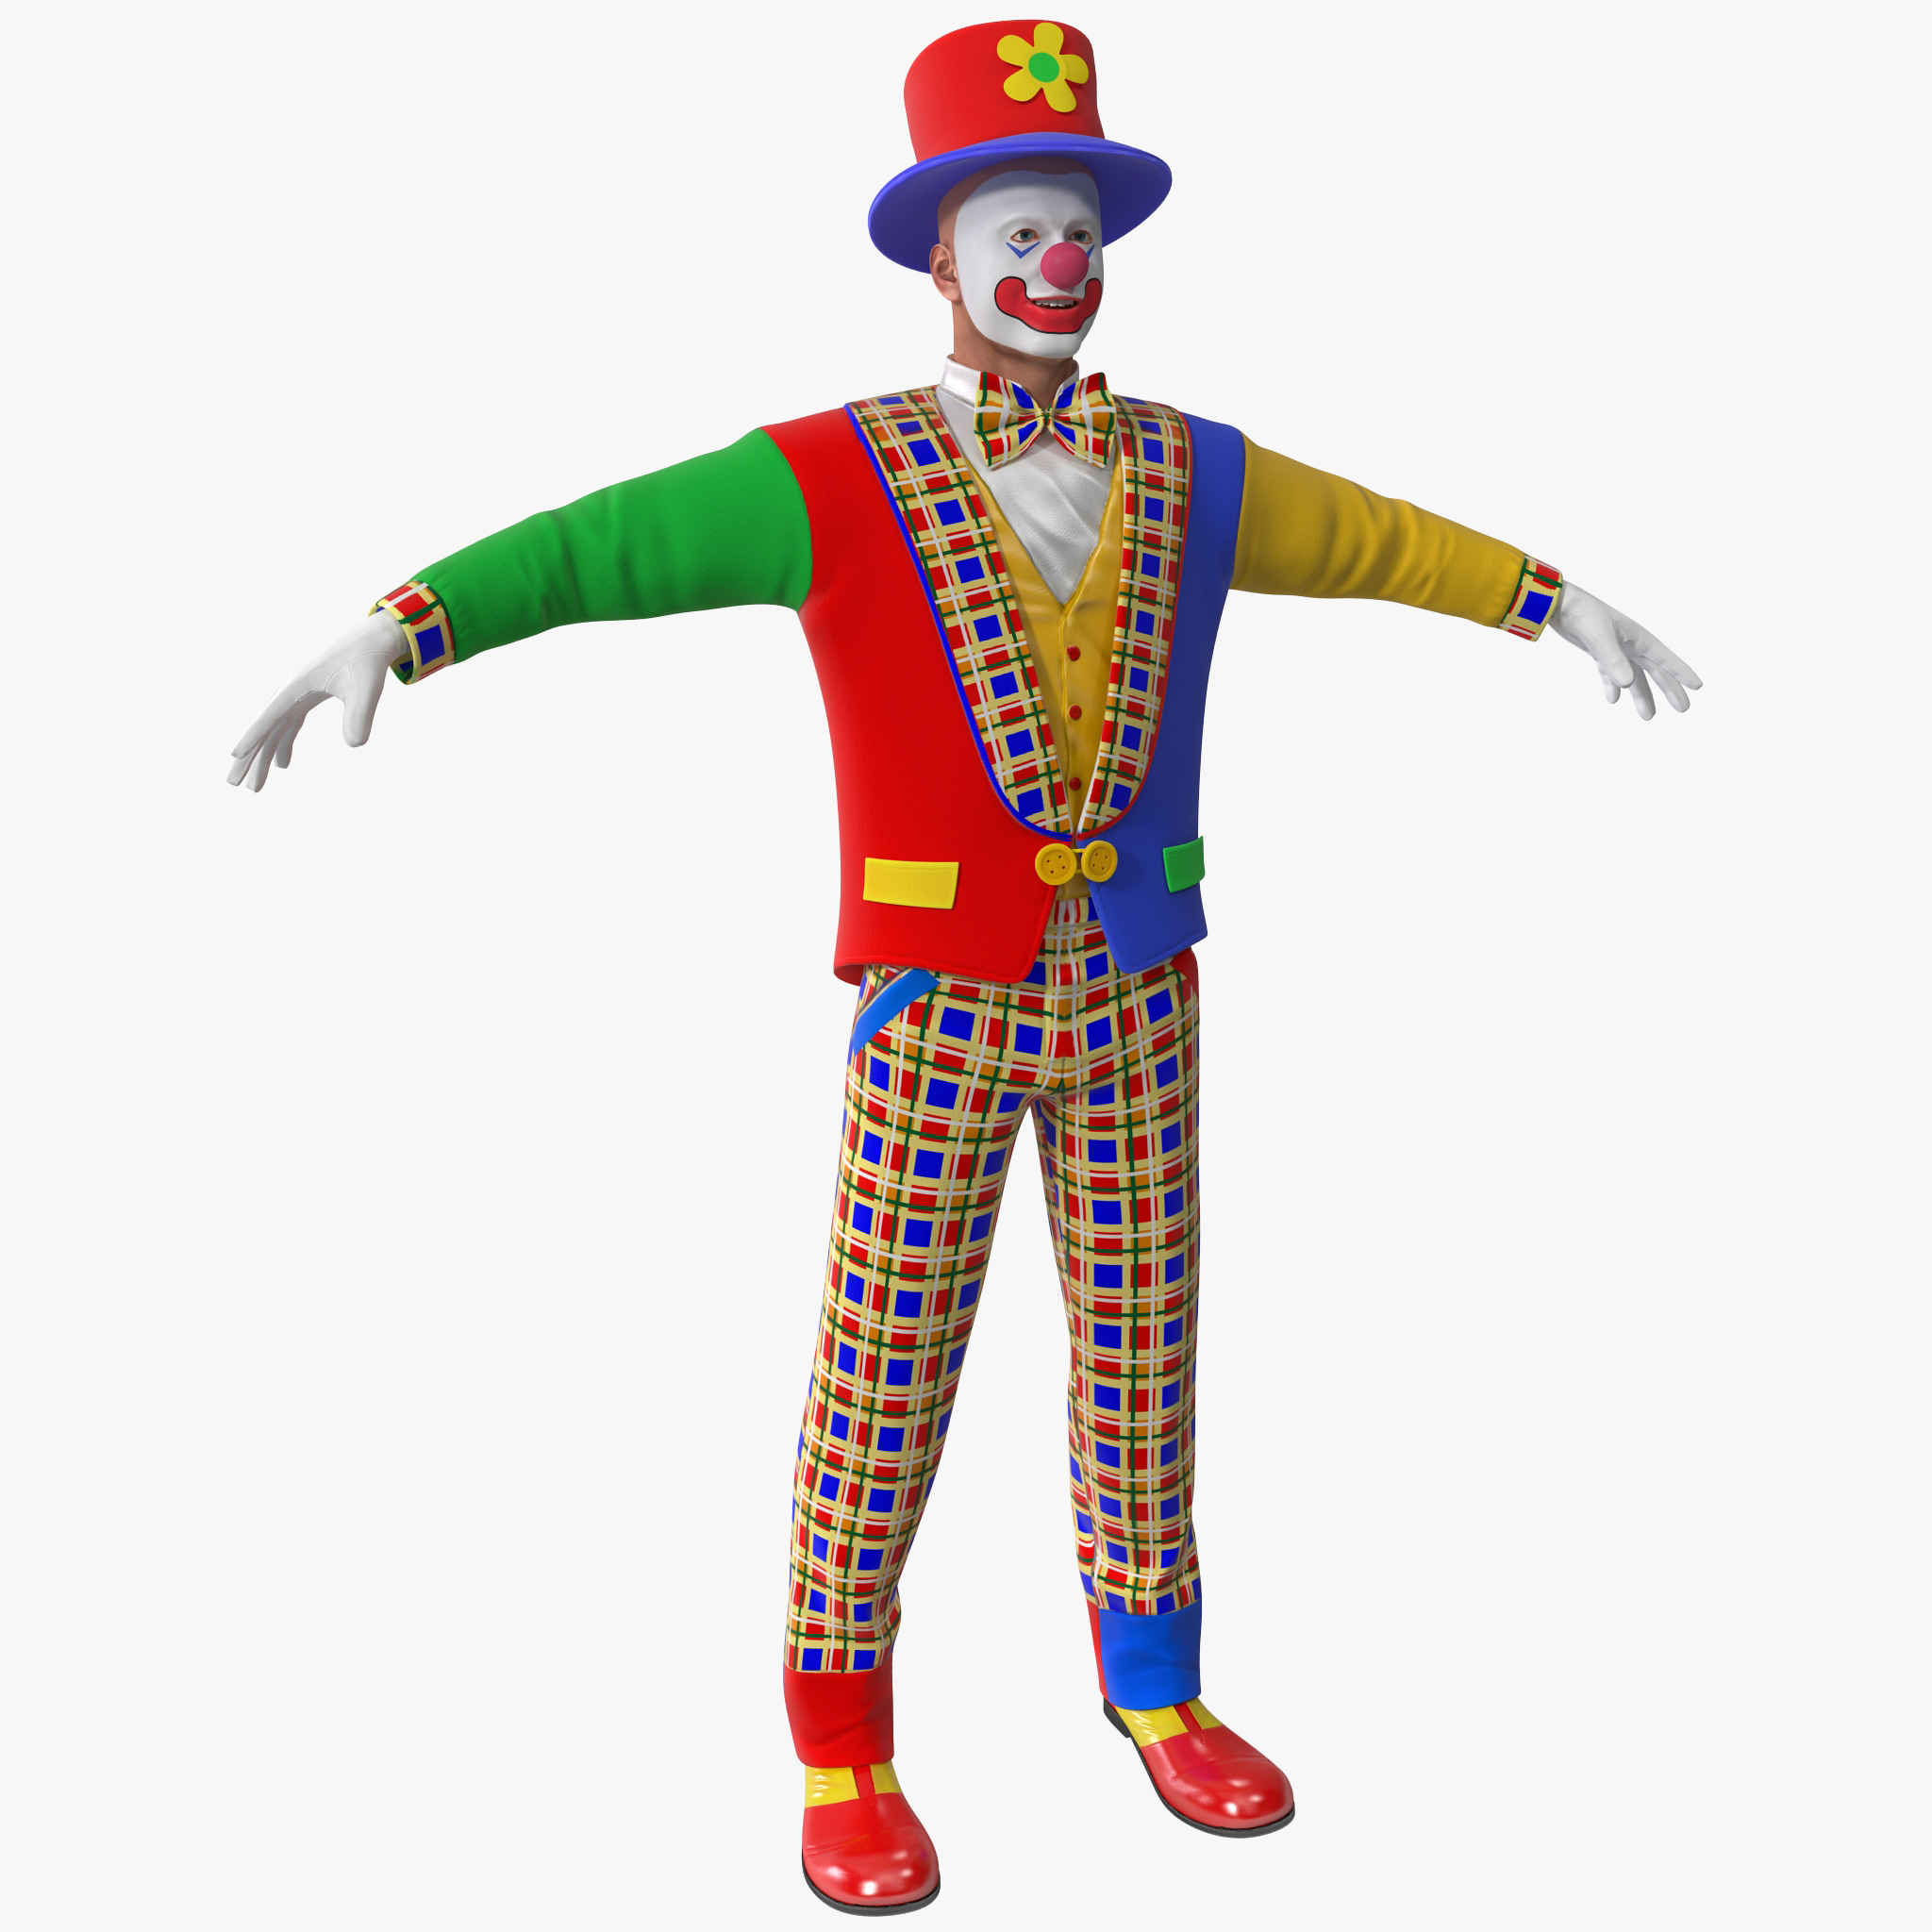 Clown 2 Rigged_1.jpg